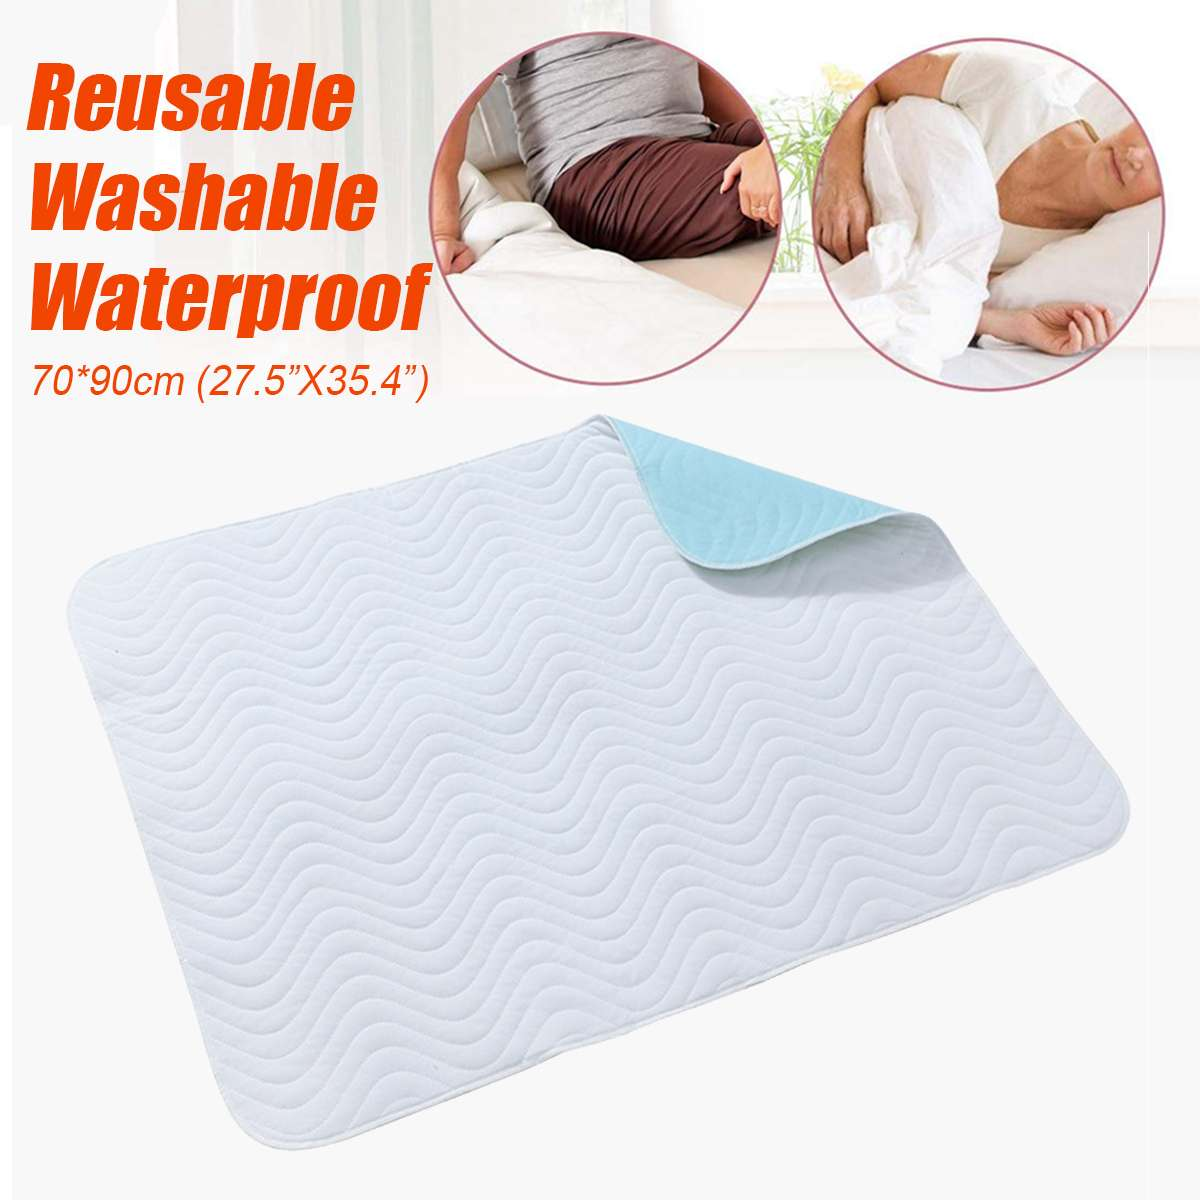 70*90cm Kids Adult Washable Reusable Protector Waterproof Underpad Bed Pad Polyester For Incontinence Patient Pad Cover Mattress